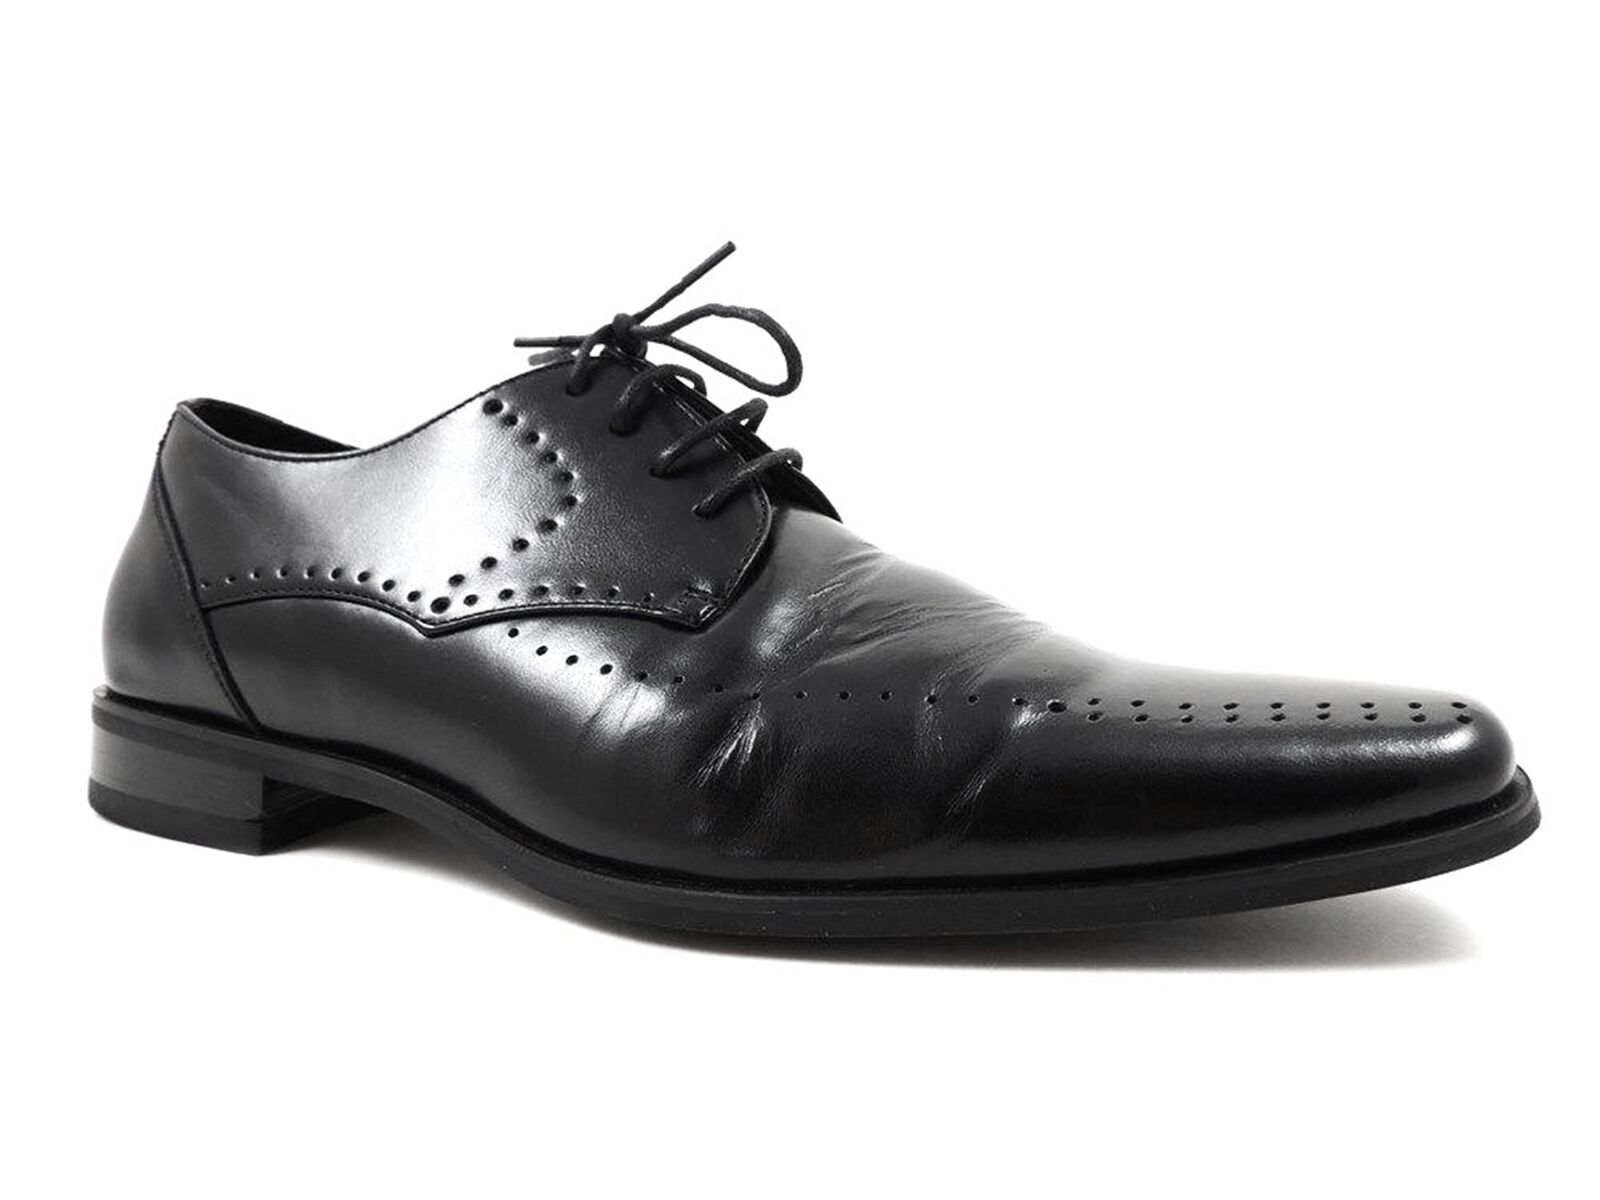 Stacy Adams Men's Black Shoes, ATWELL Perforated Oxfords Black Men's Leather 11 M MSRP $85 d7504e